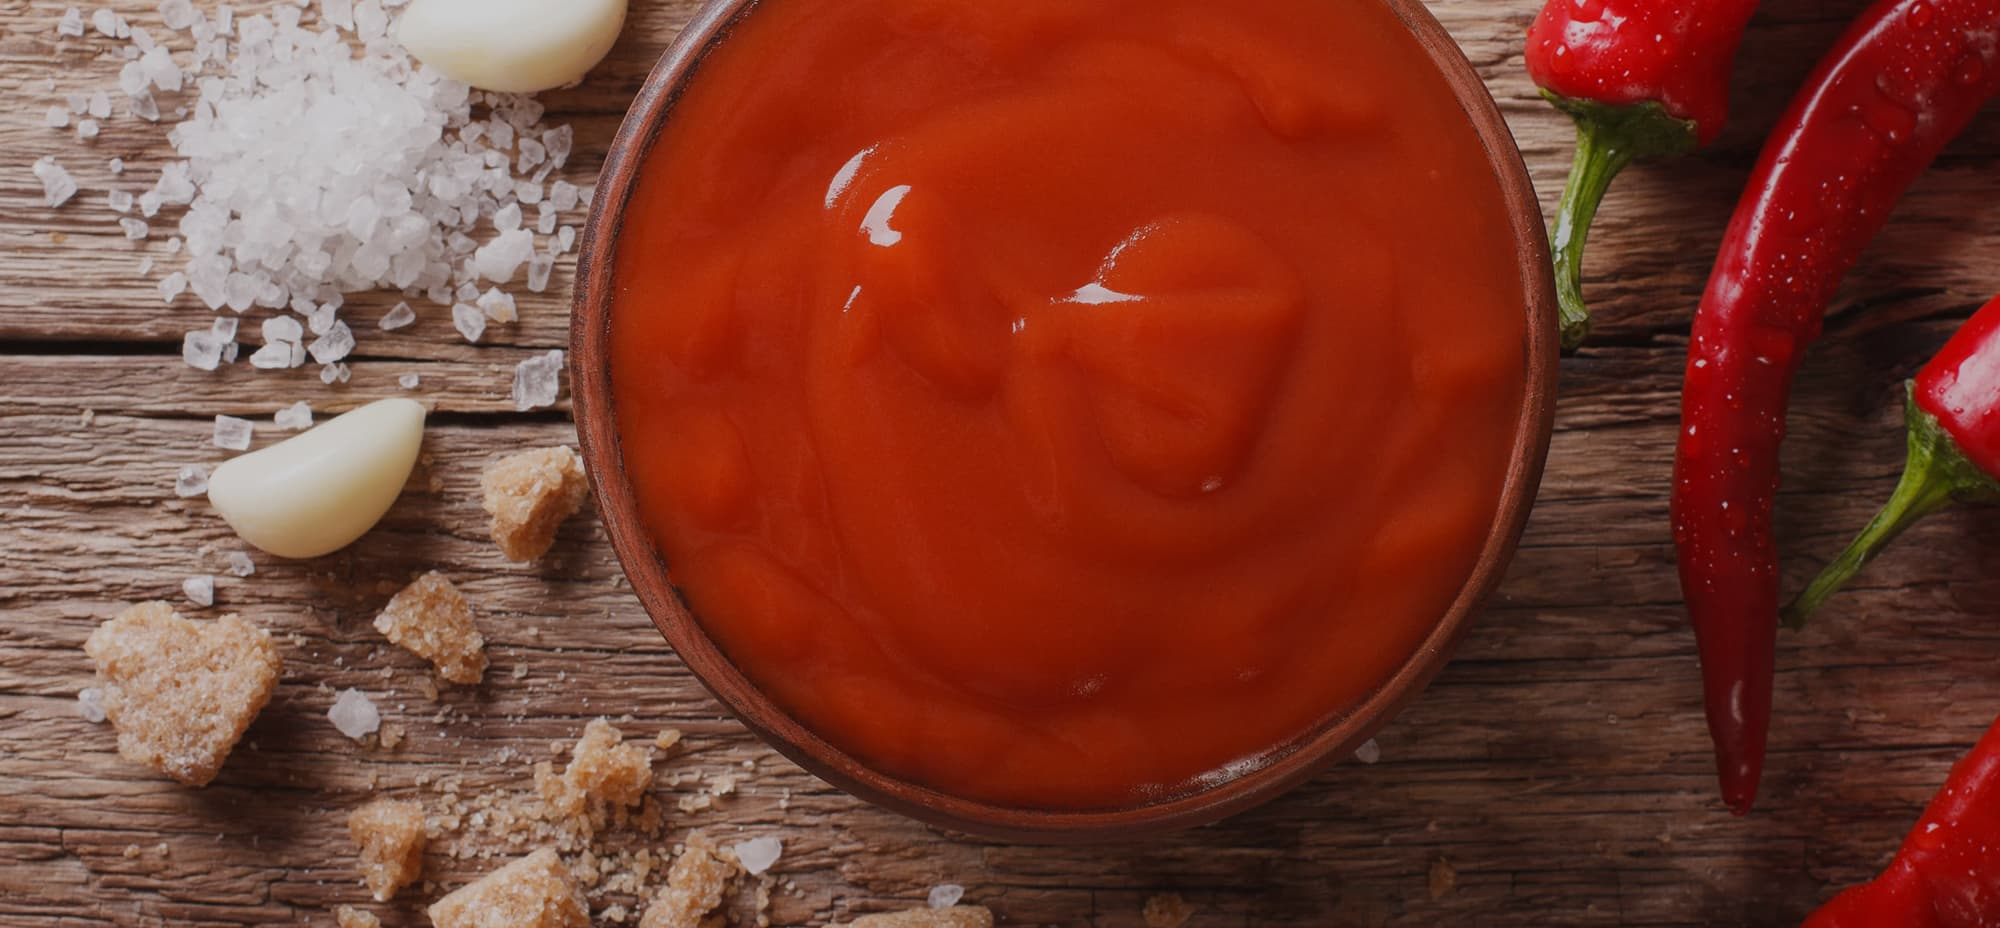 Image of a serving or sriracha sauce